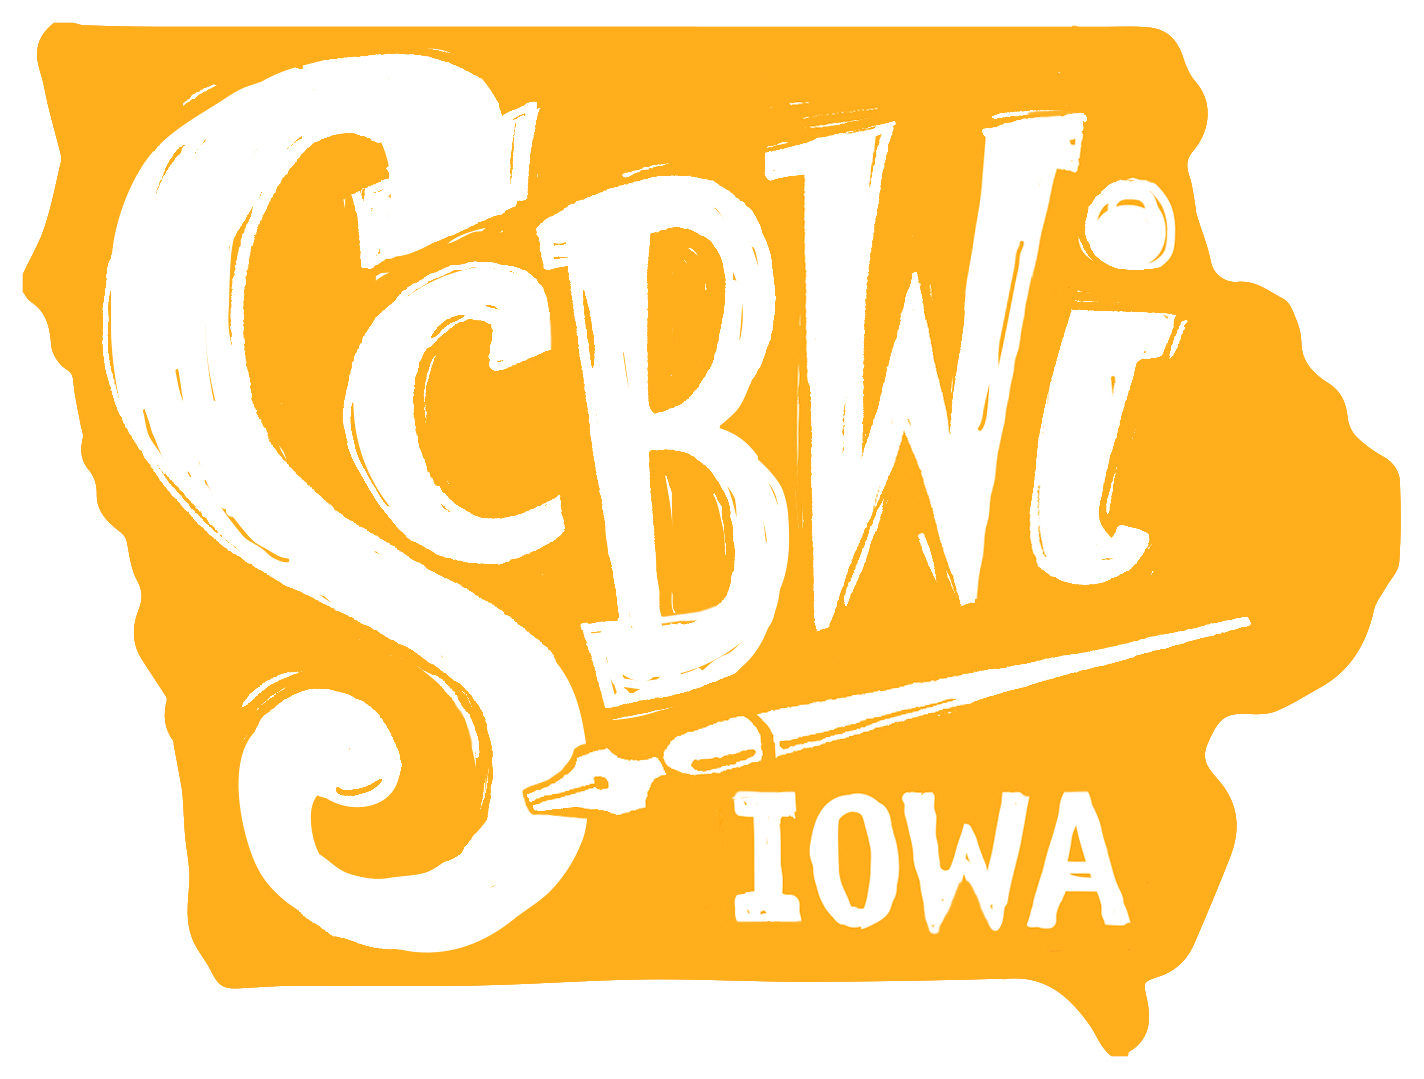 Thank you so much to one of our very talented Iowa illustrators, Joe Hox, for designing our new logo. We love it!